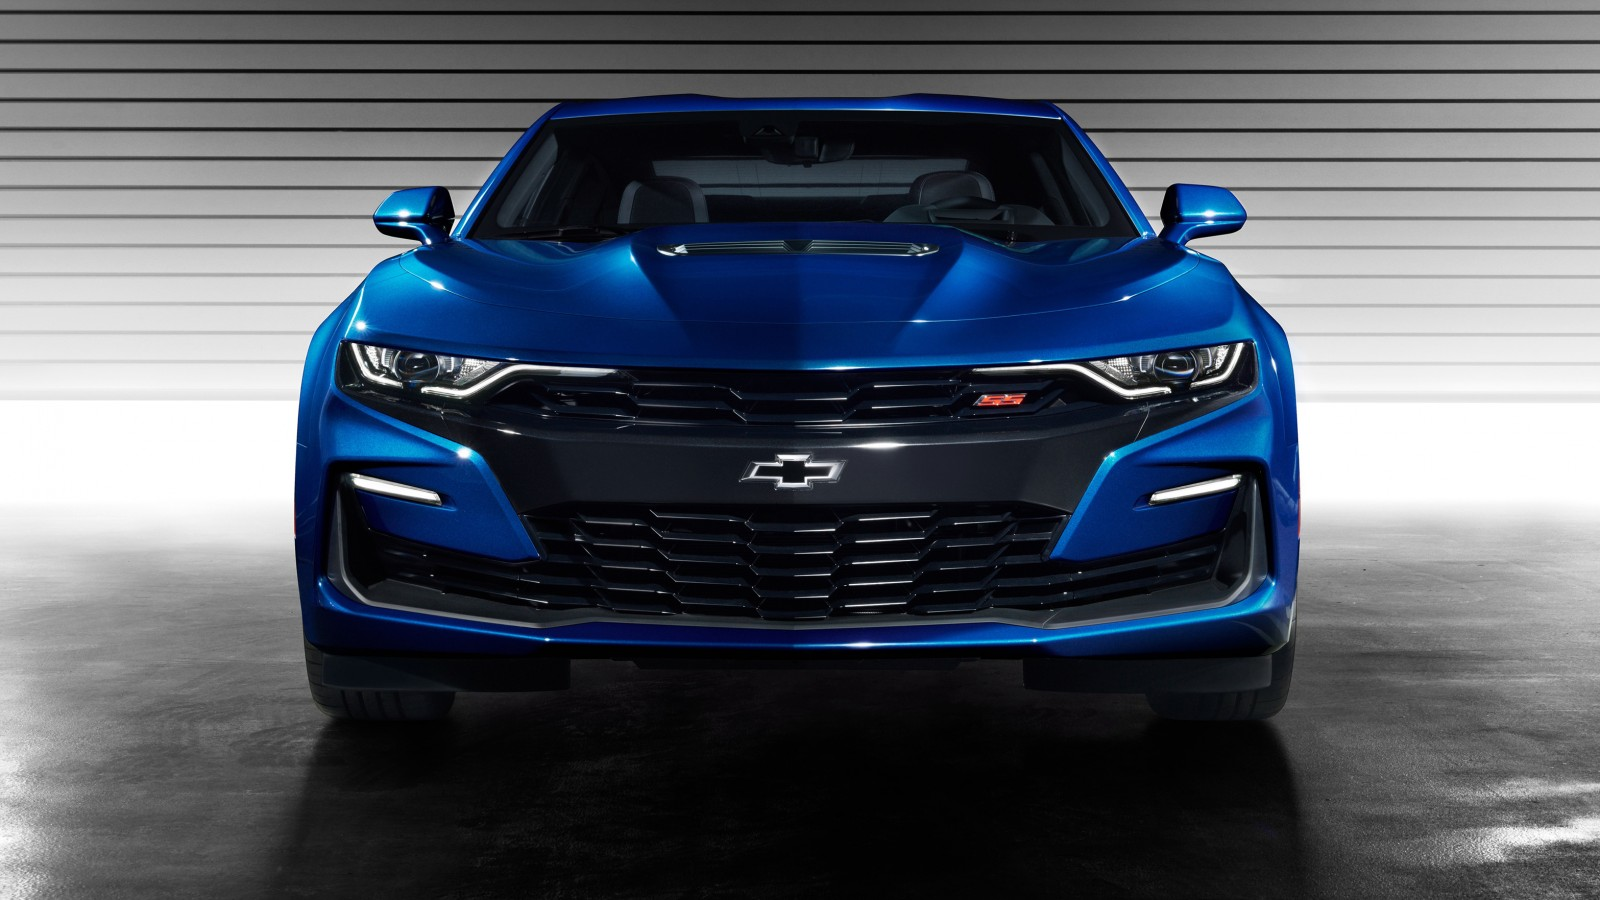 Camaro Gt4r >> 2019 Chevrolet Camaro SS Wallpaper | HD Car Wallpapers | ID #10155